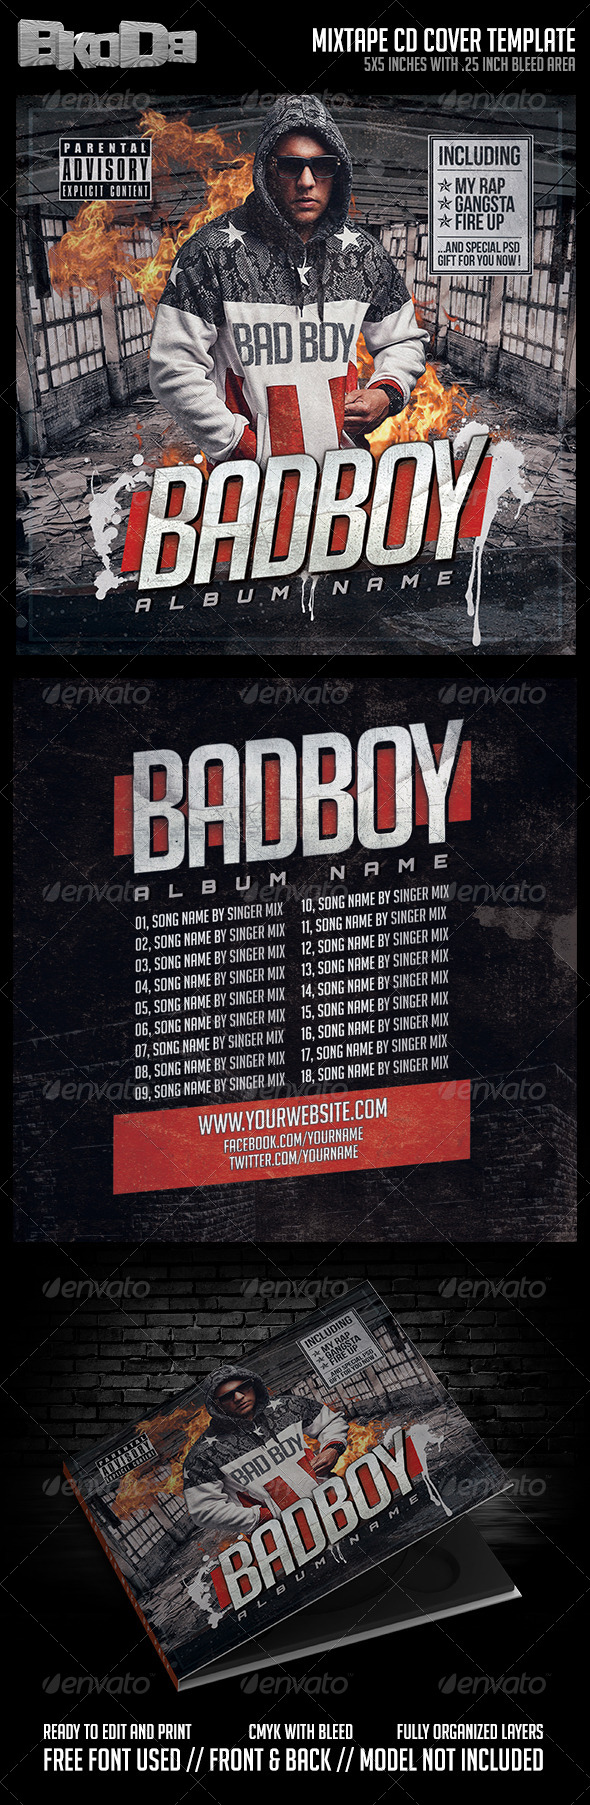 Mixtape Cover Template PSD Bad Boy